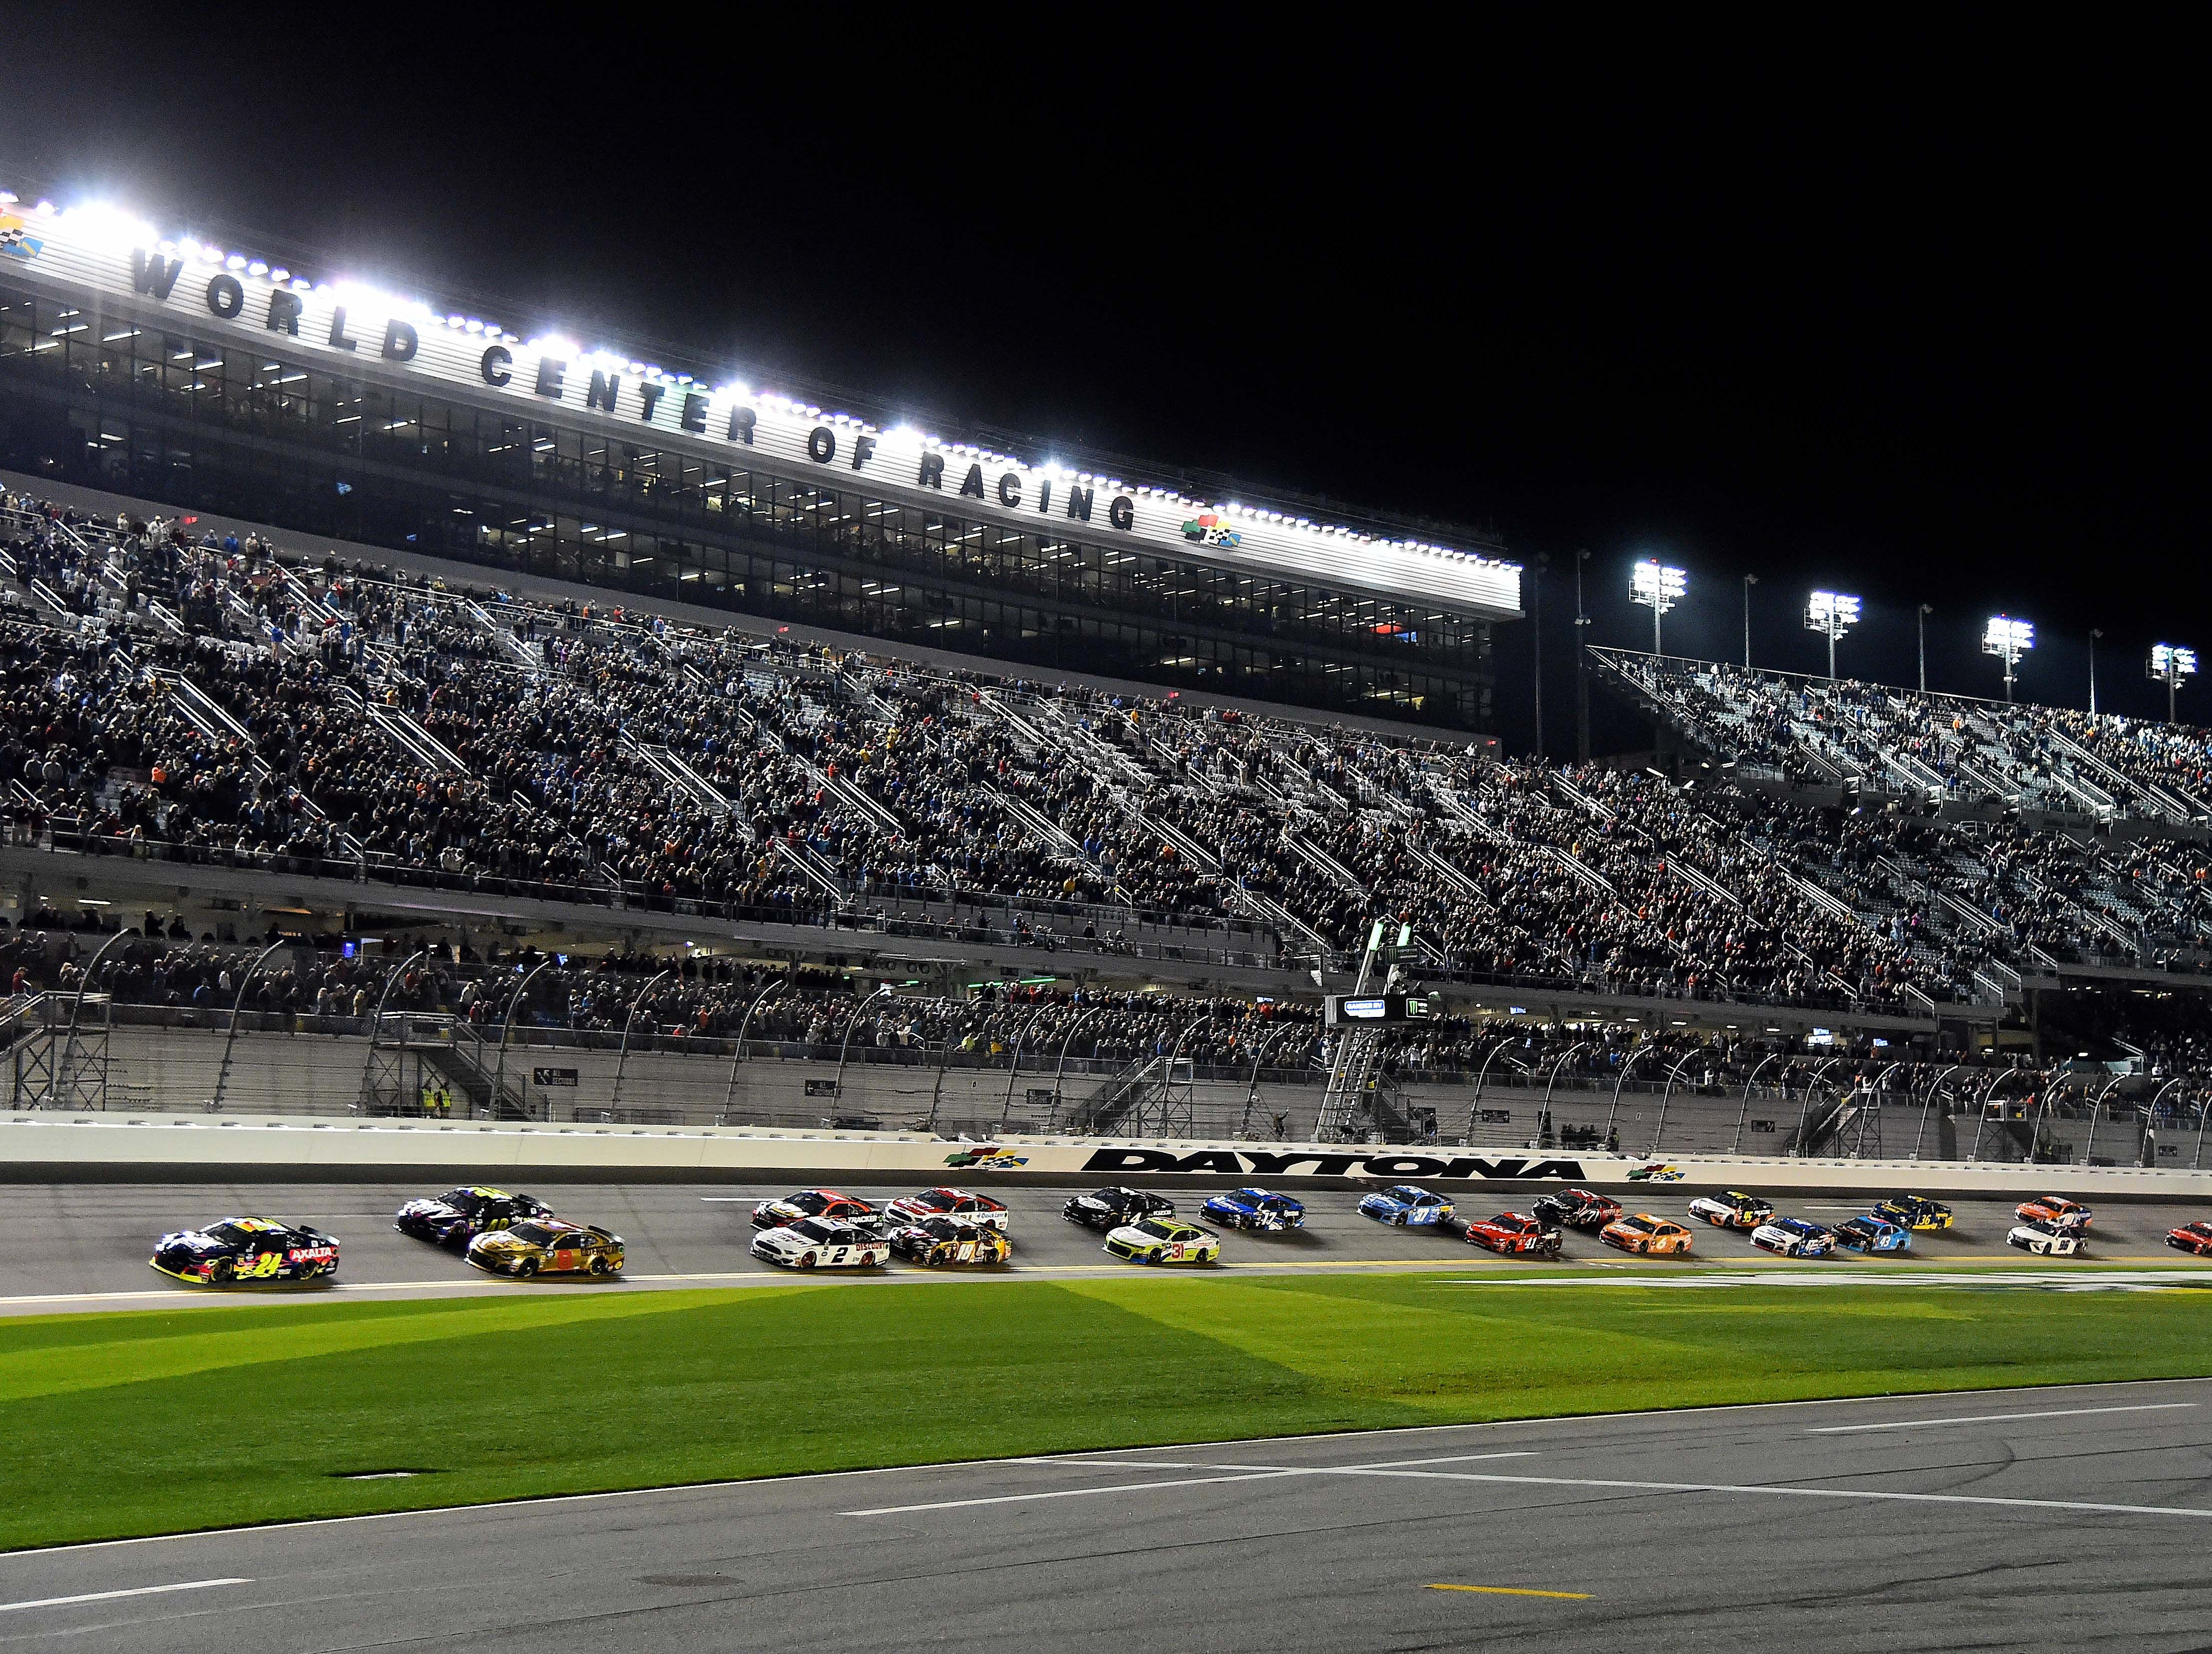 Feb. 14: William Bryon (24), who topped Daytona 500 pole qualifying, leads the field to start the Gander RV Duel 1 at Daytona International Speedway.